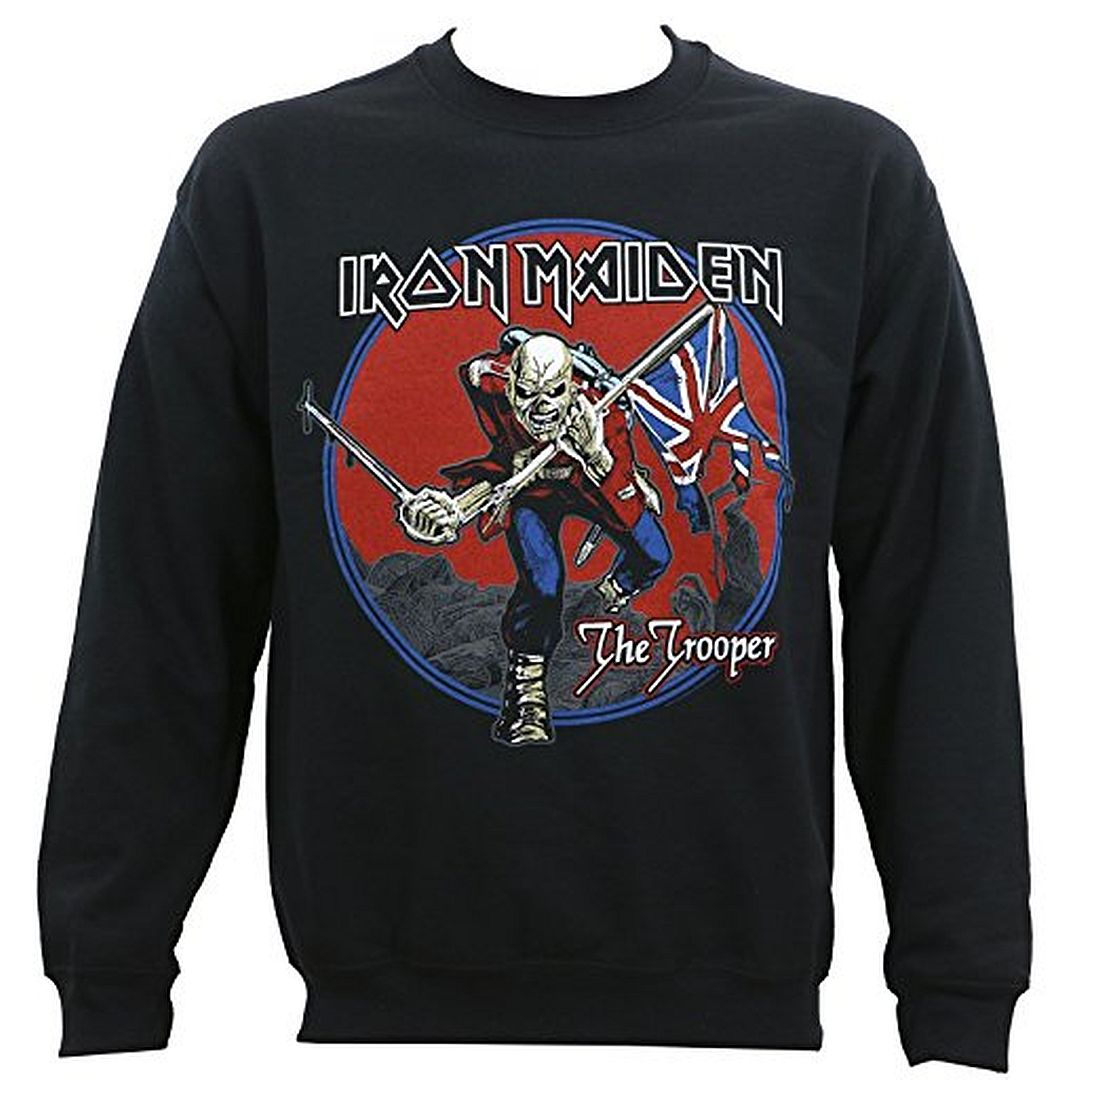 89d6d4d5 Details about Iron Maiden Trooper Red Sky Crewneck Sweatshirt All Sizes New